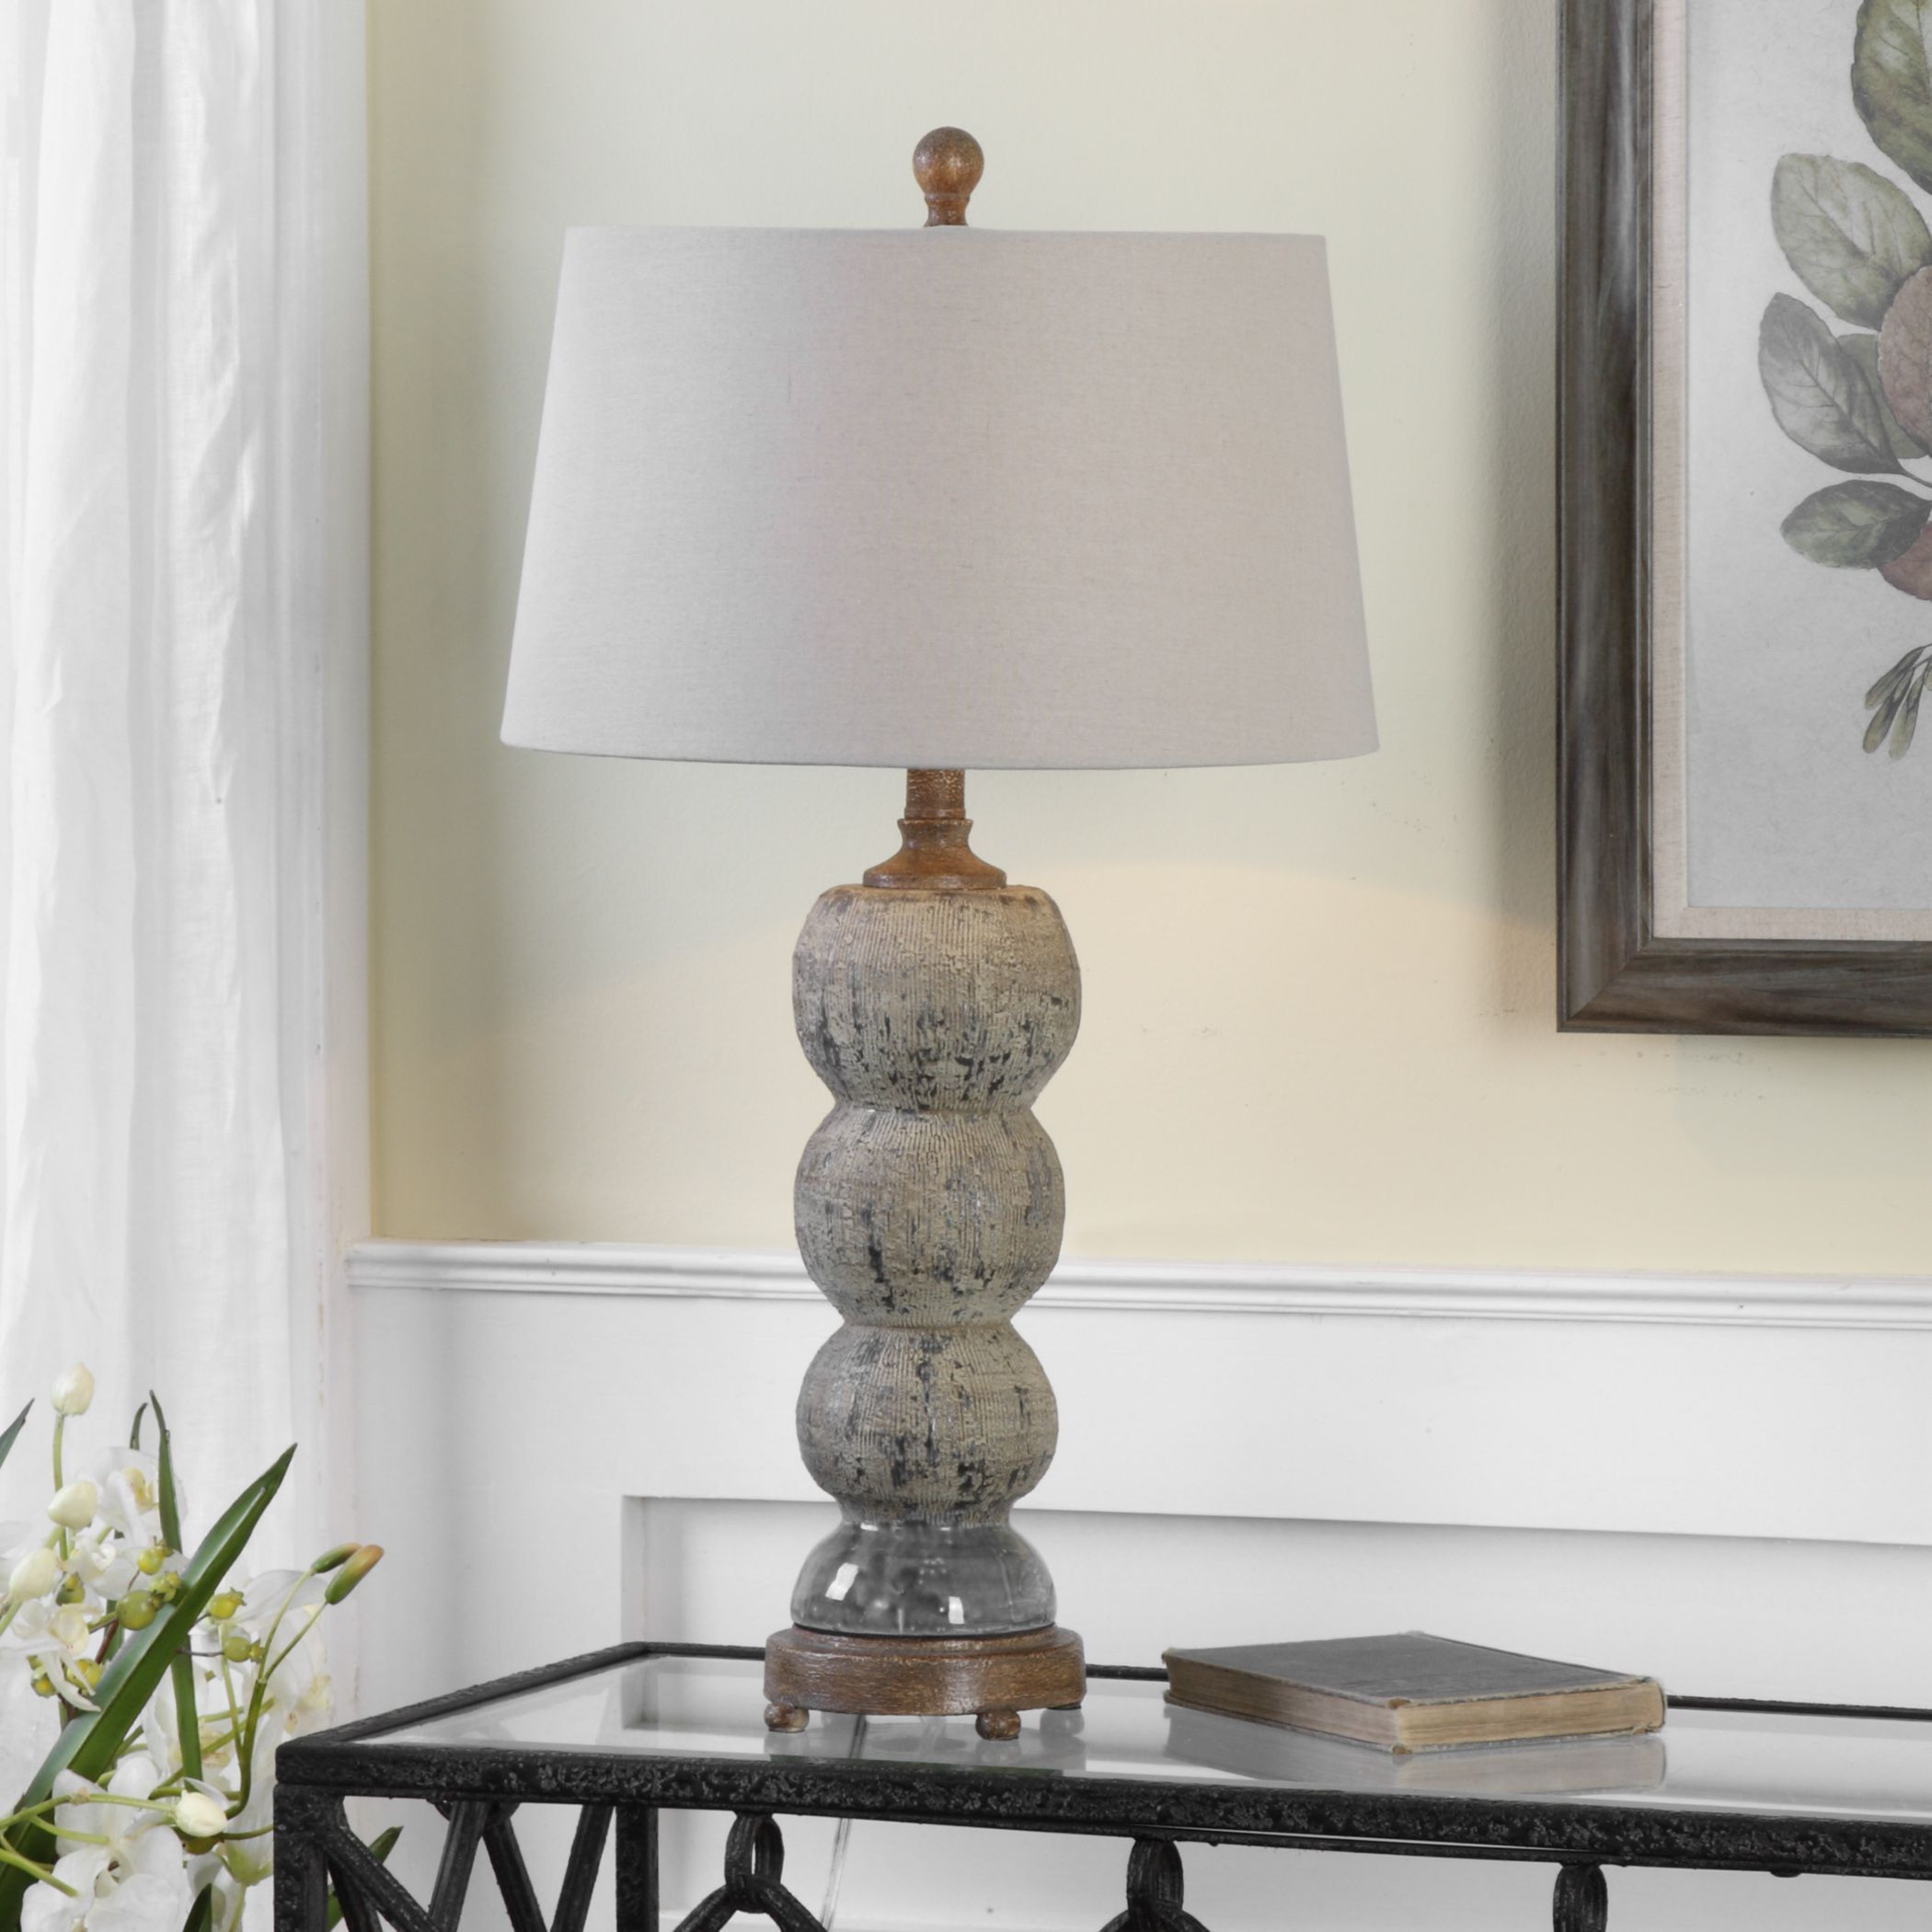 chinese vase lamp of shop uttermost amelia textured ceramic lamp free shipping today for shop uttermost amelia textured ceramic lamp free shipping today overstock com 13575485